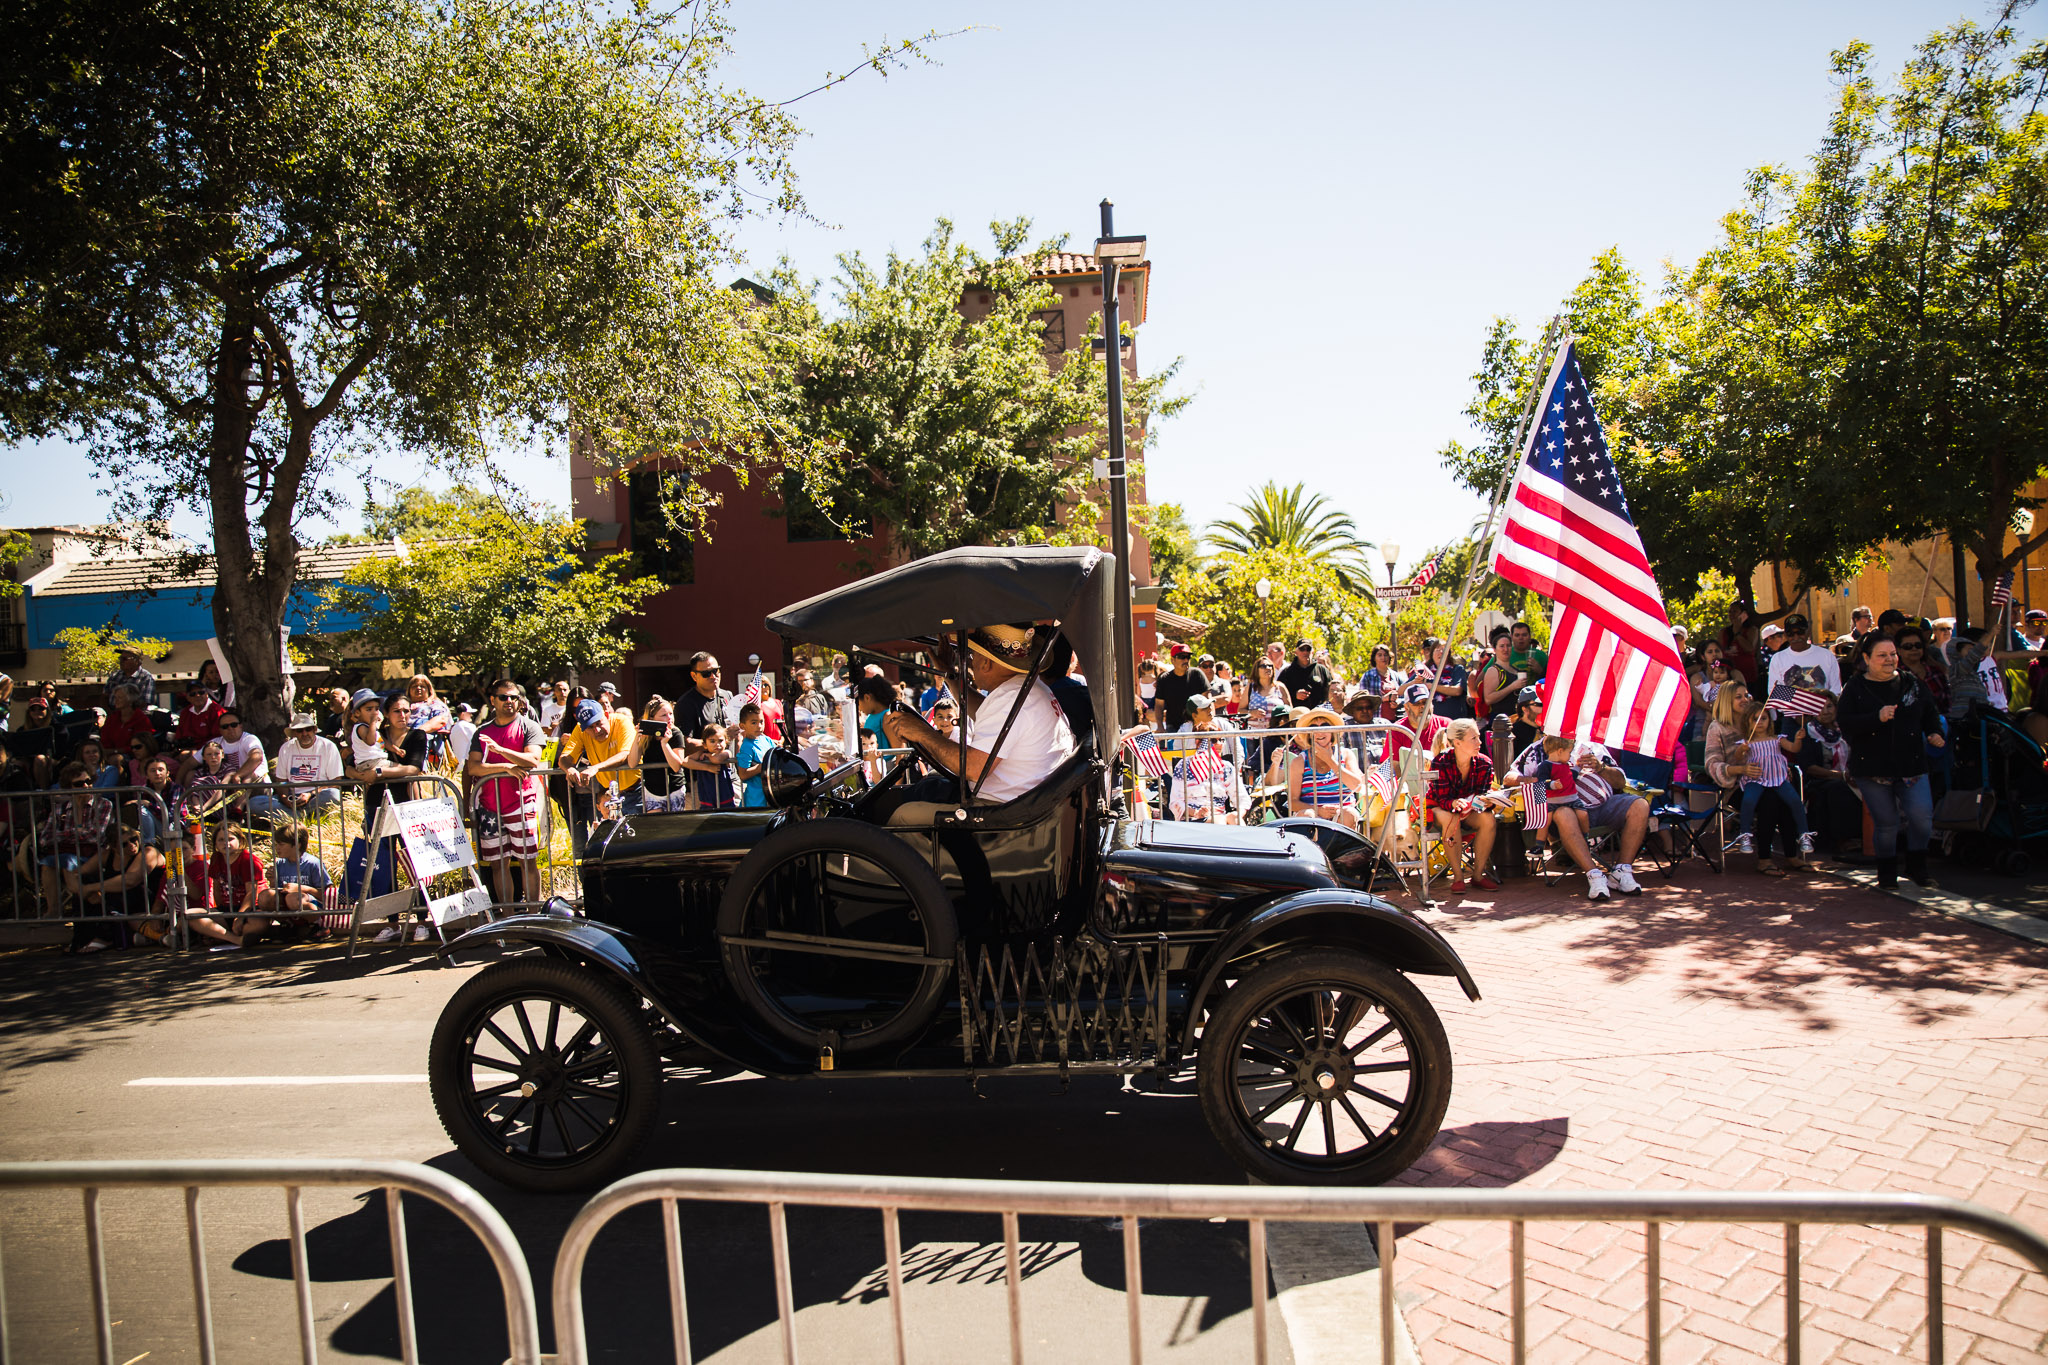 Archer_Inspired_Photography_Morgan_Hill_California_4th_of_july_parade-88.jpg